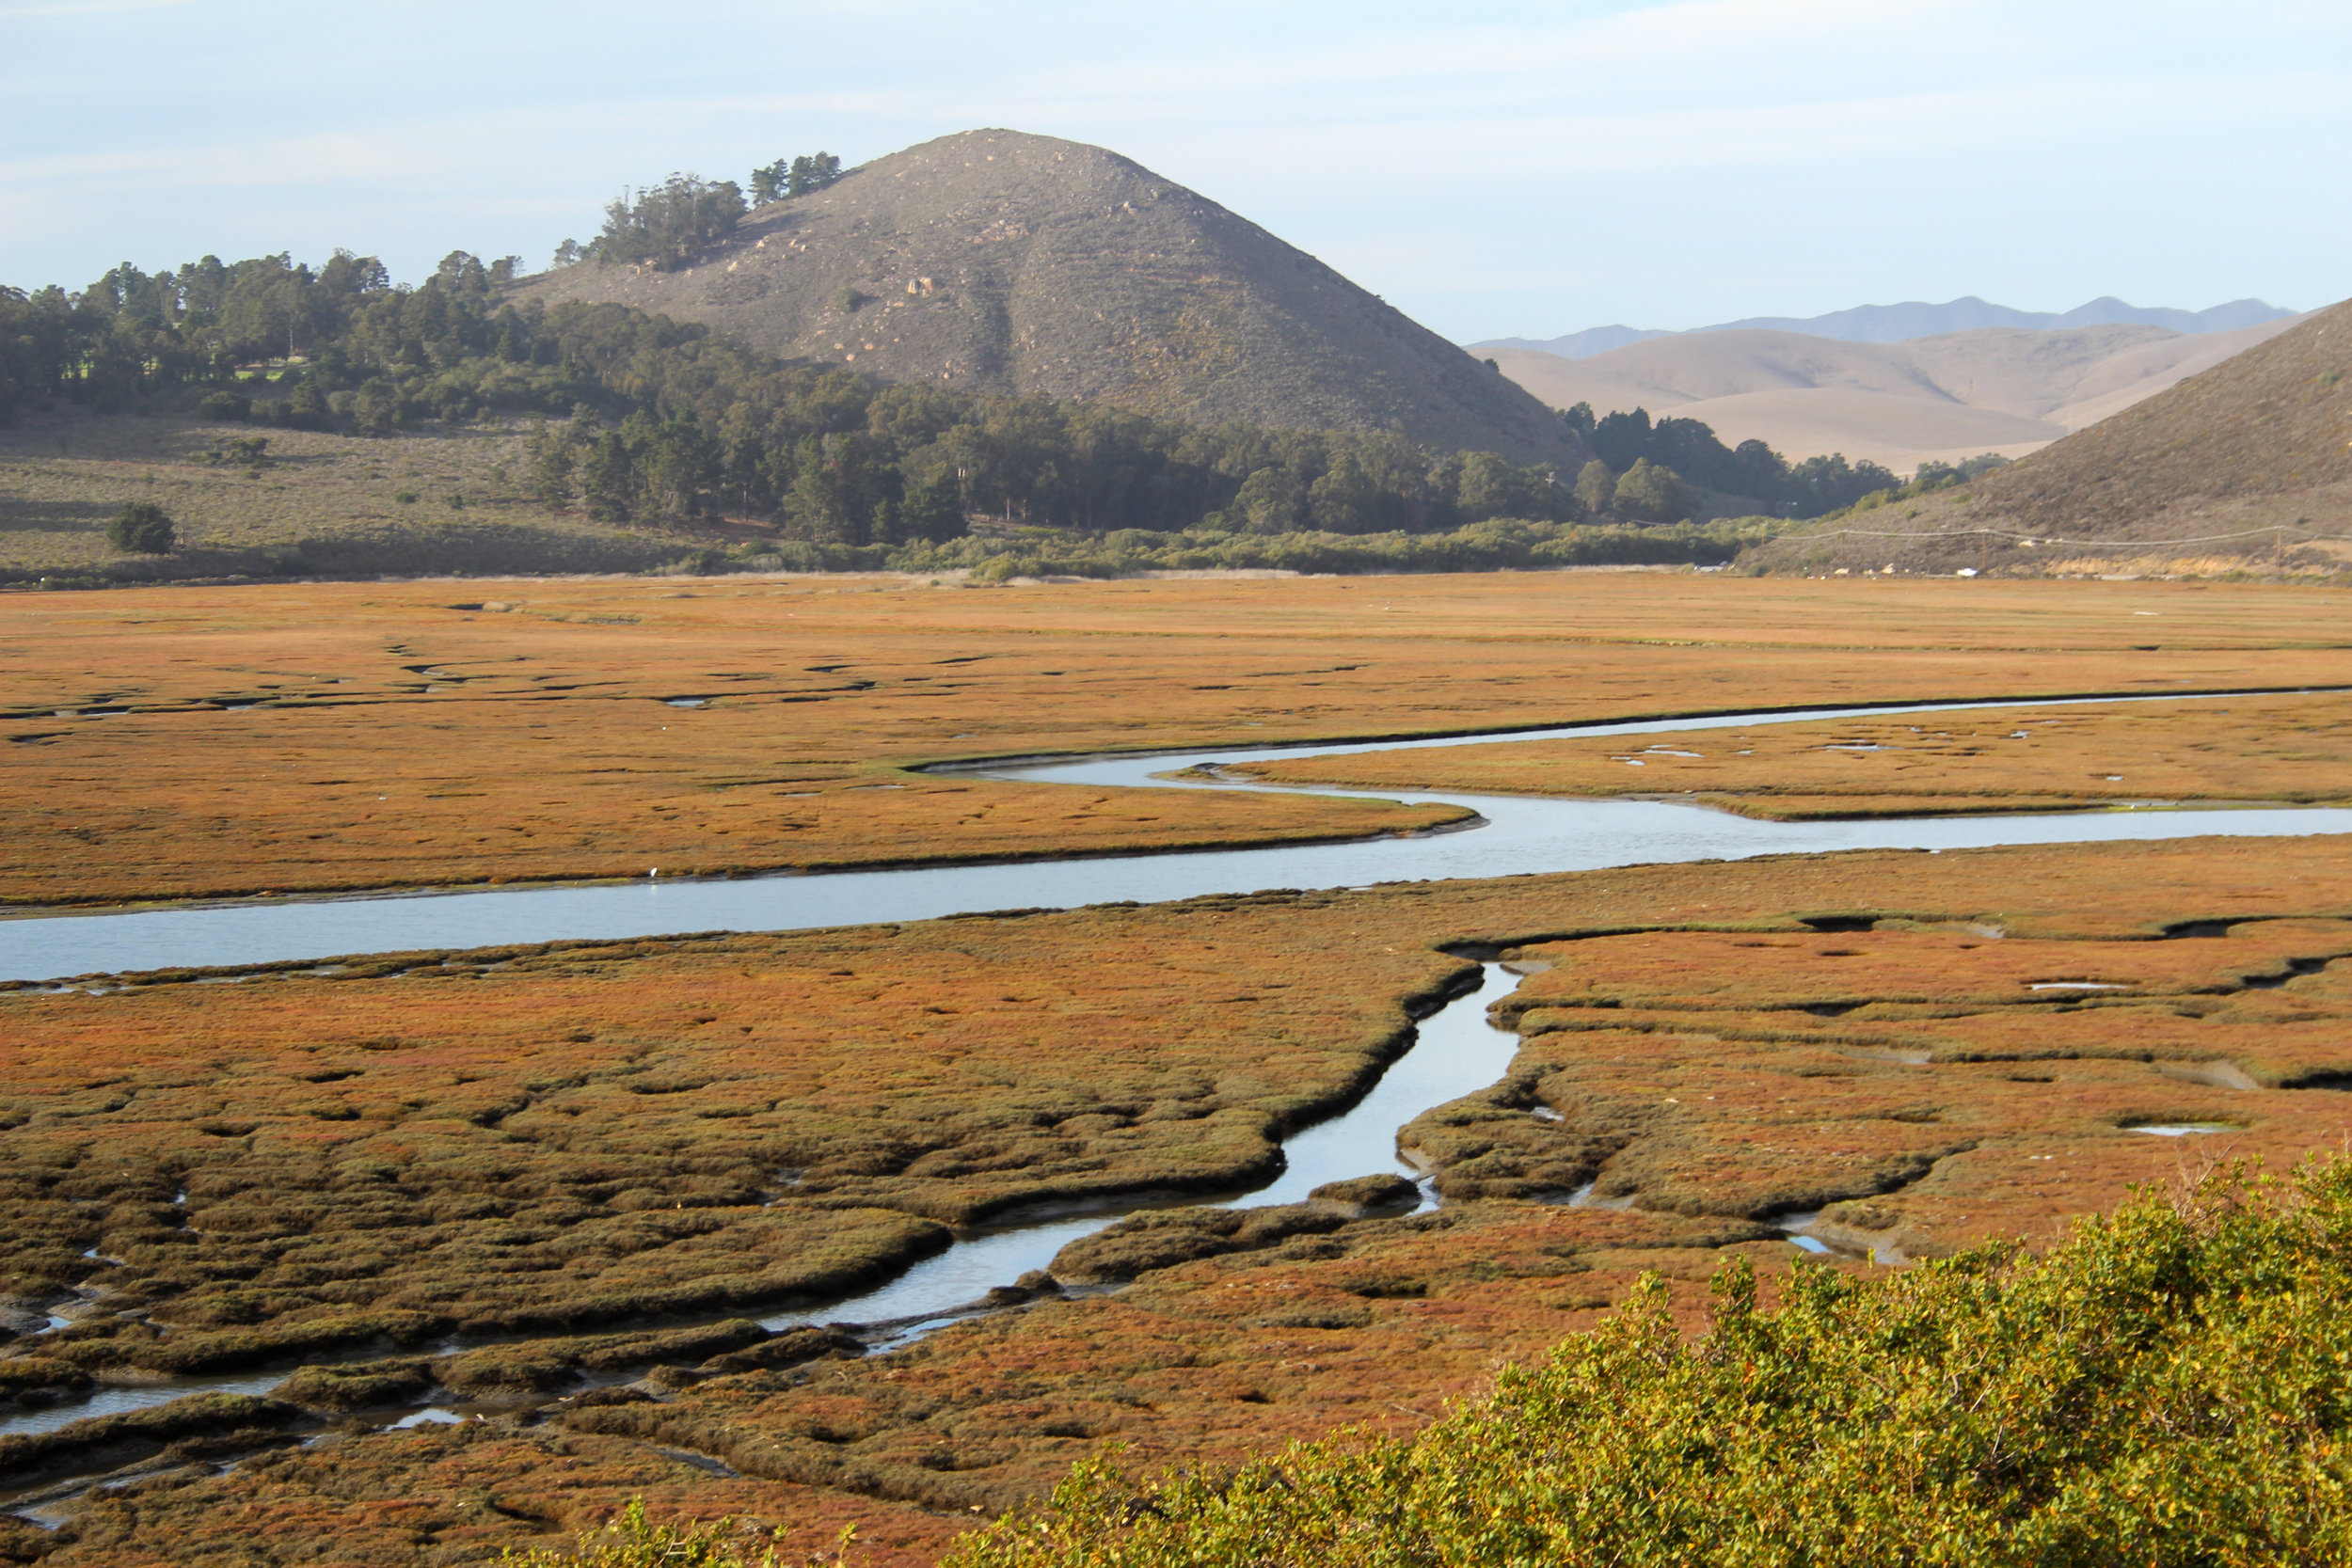 Morro Bay marsh, California, USA